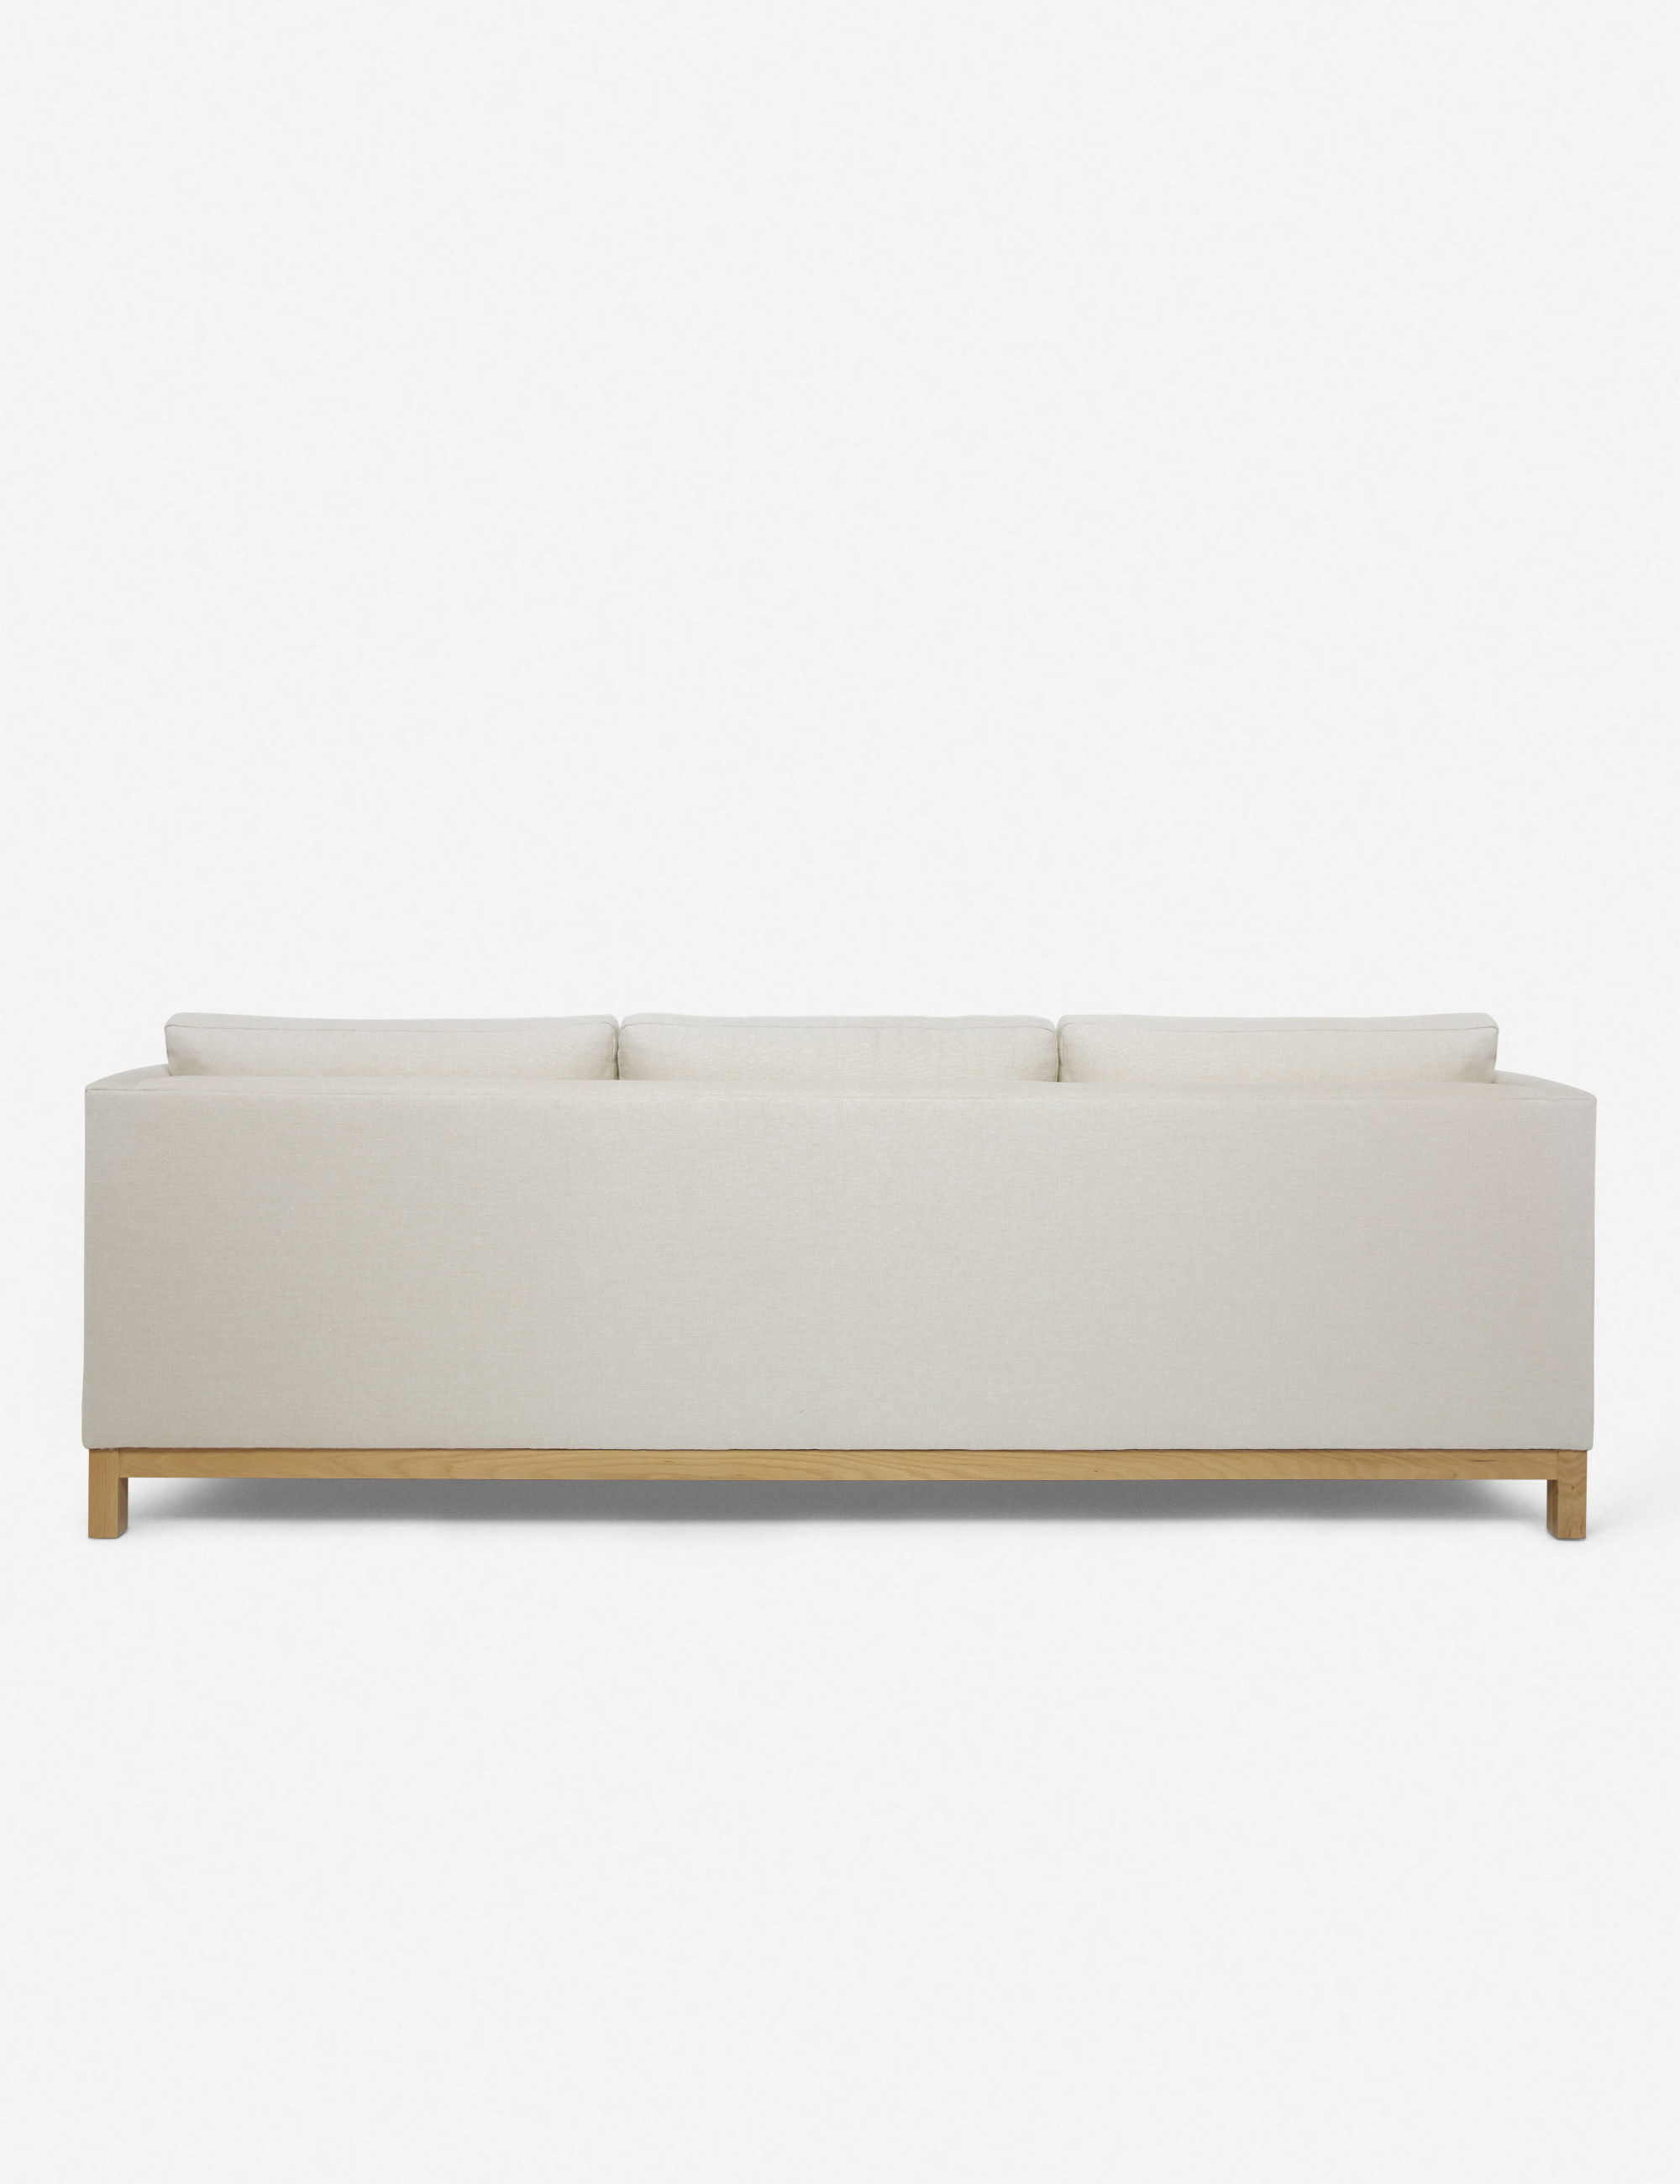 GINNY_MACDONALD_Hollingworth-Sectional-LAF-Linen-Natural-4